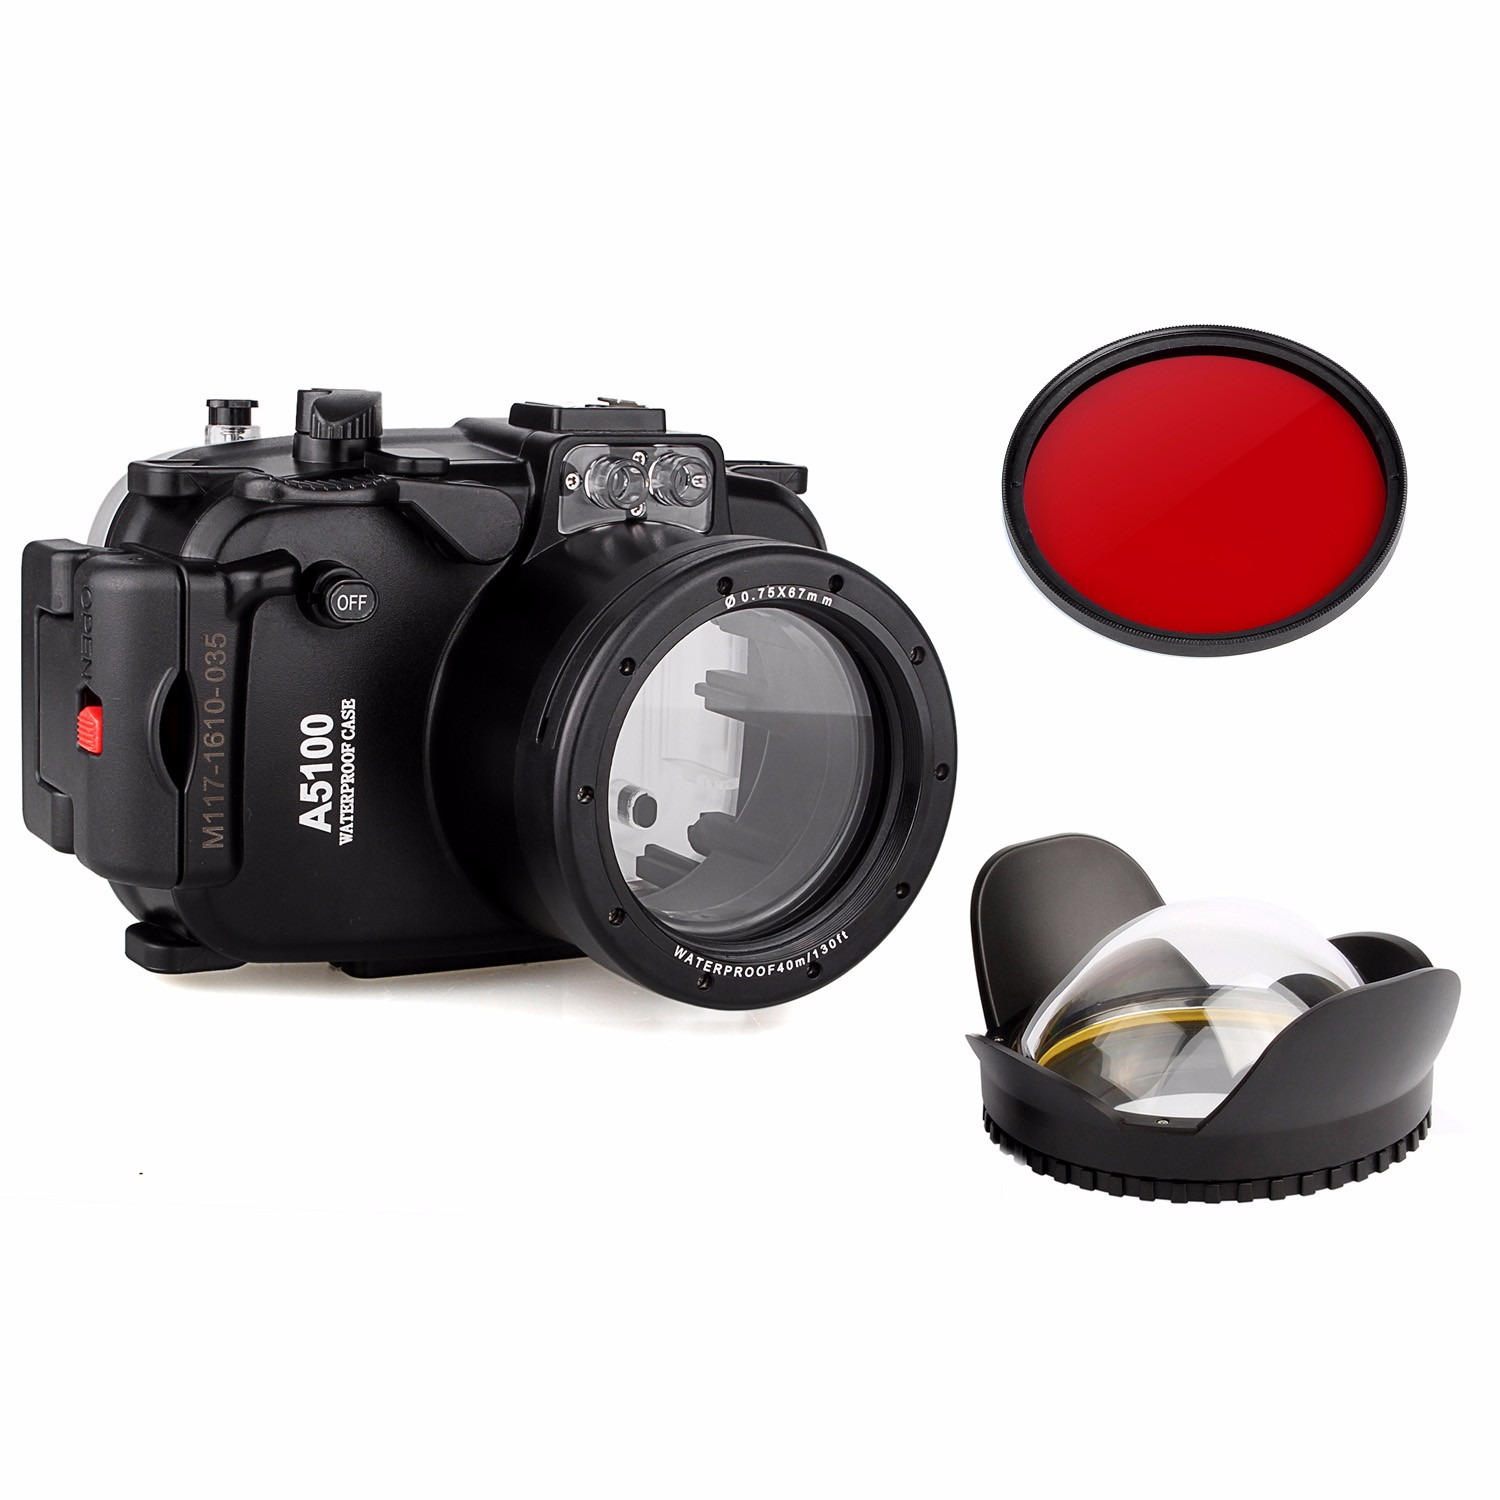 40m 130ft Waterproof Underwater Camera Housing Case Bag for Sony A5100 16-50mm Lens Camera + 67mm Fisheye Lens + 67mm Red Filter waterproof underwater housing camera bag case for sony a6000 16 50mm lens